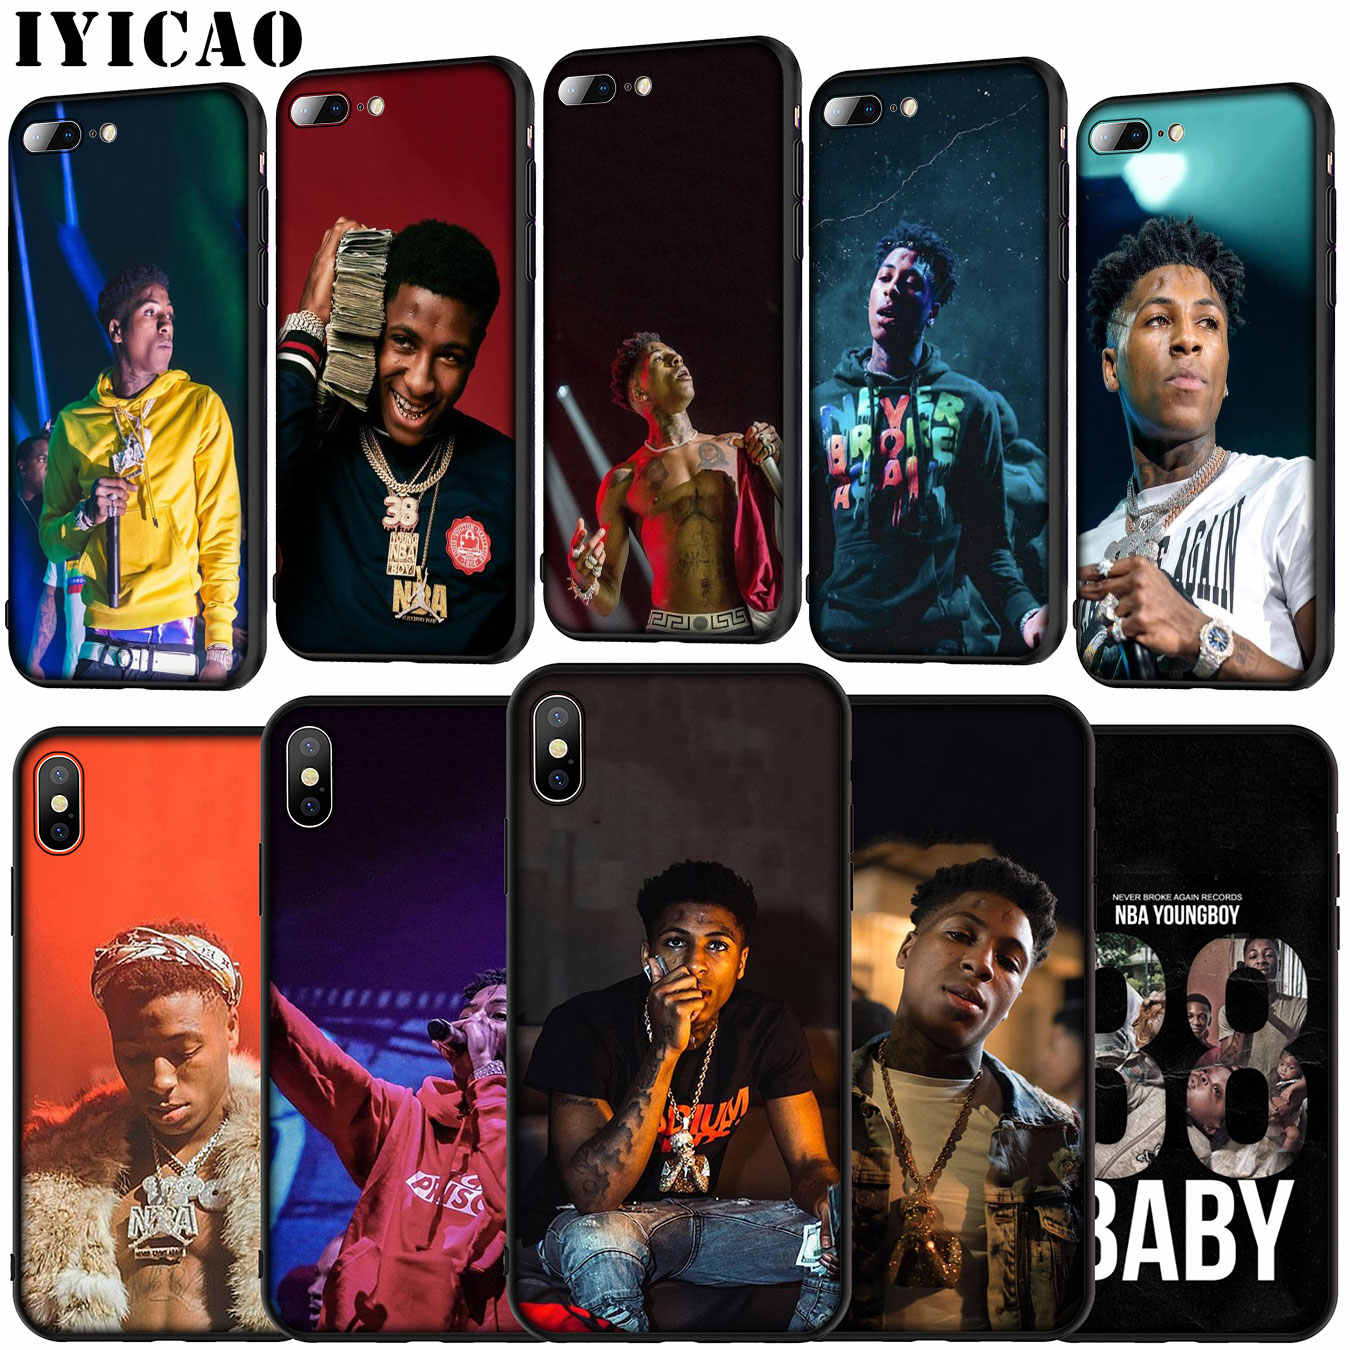 YoungBoy Nooit Gebroken Weer Hot zanger Soft Silicone Cover Case voor iPhone 11 Pro XR X XS Max 6 6S 7 8 Plus 5 5S SE Telefoon Case